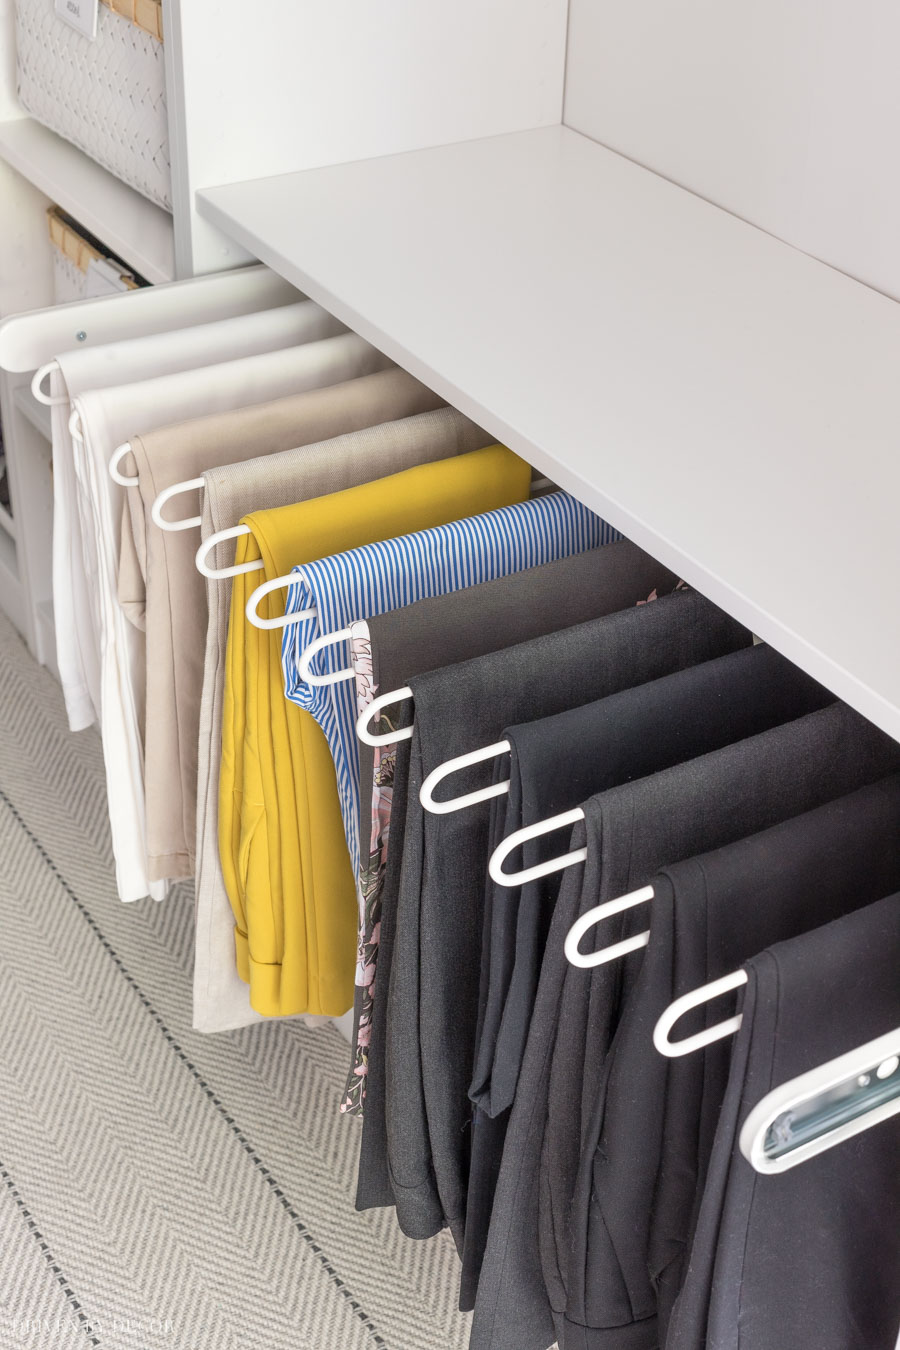 Love having this IKEA PAX KOMPLEMENT pants hanger in our master closet!